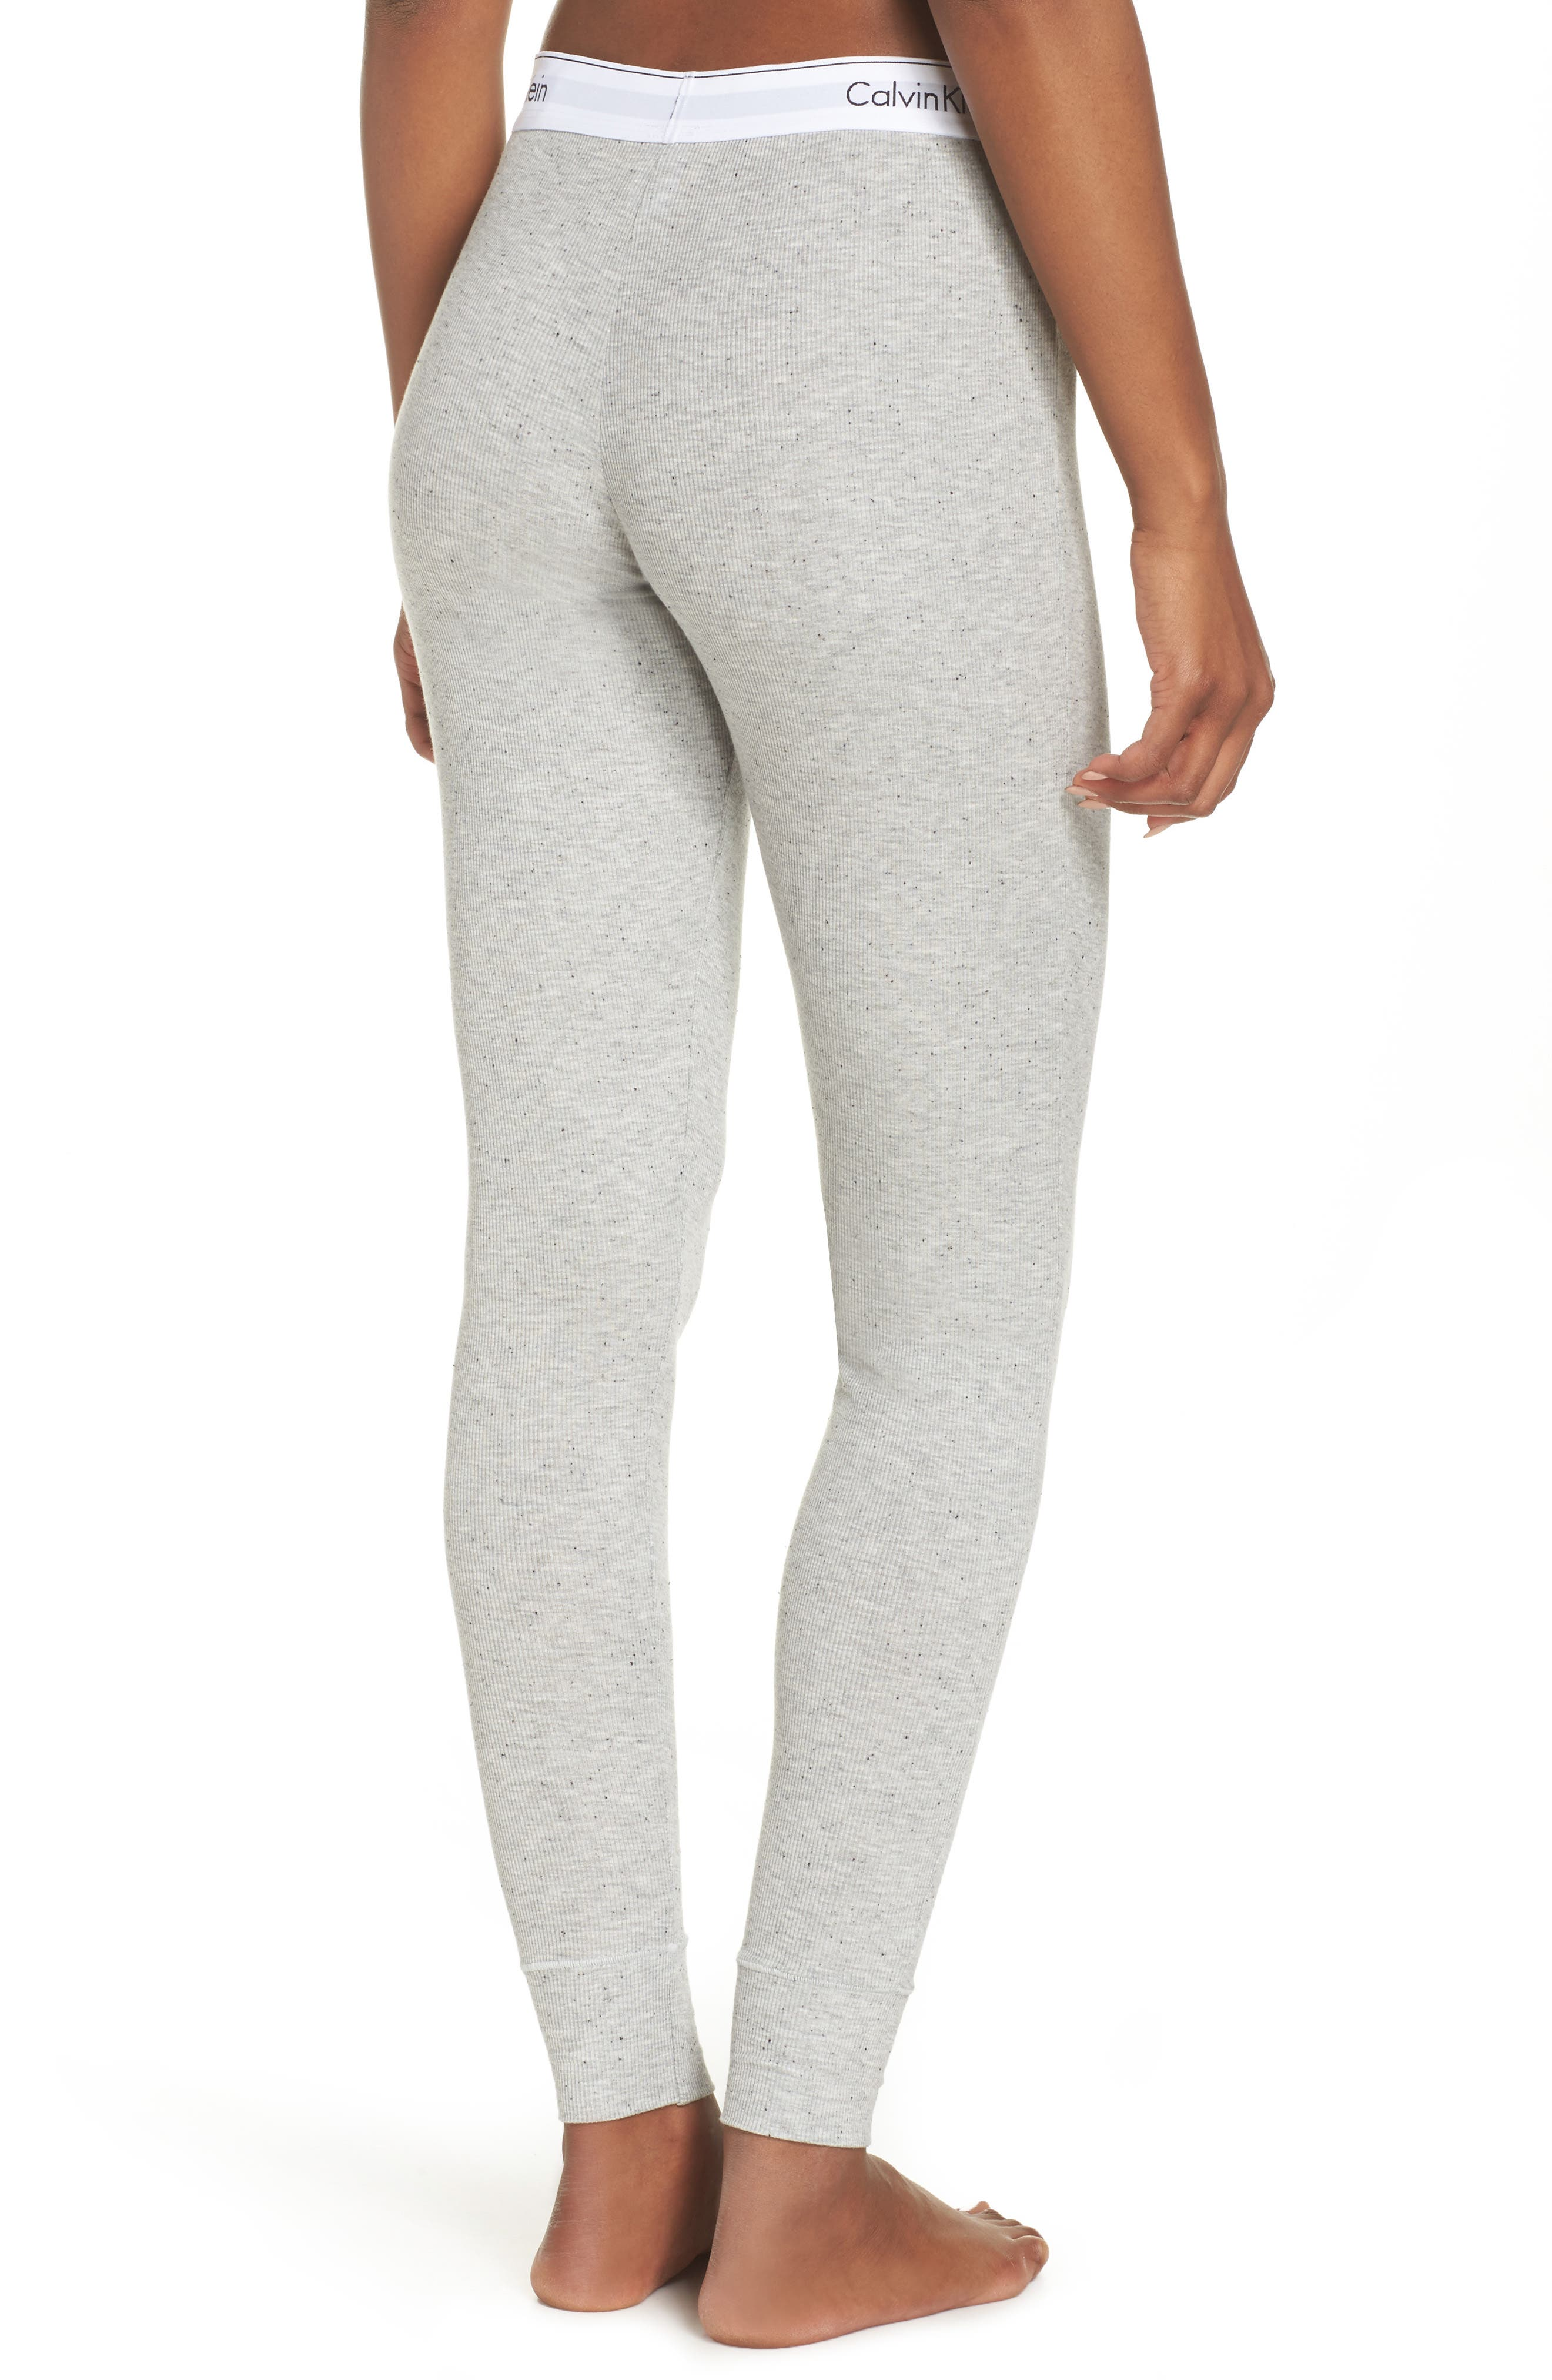 Lounge Leggings,                             Alternate thumbnail 2, color,                             Graphic Rib Grey Heather